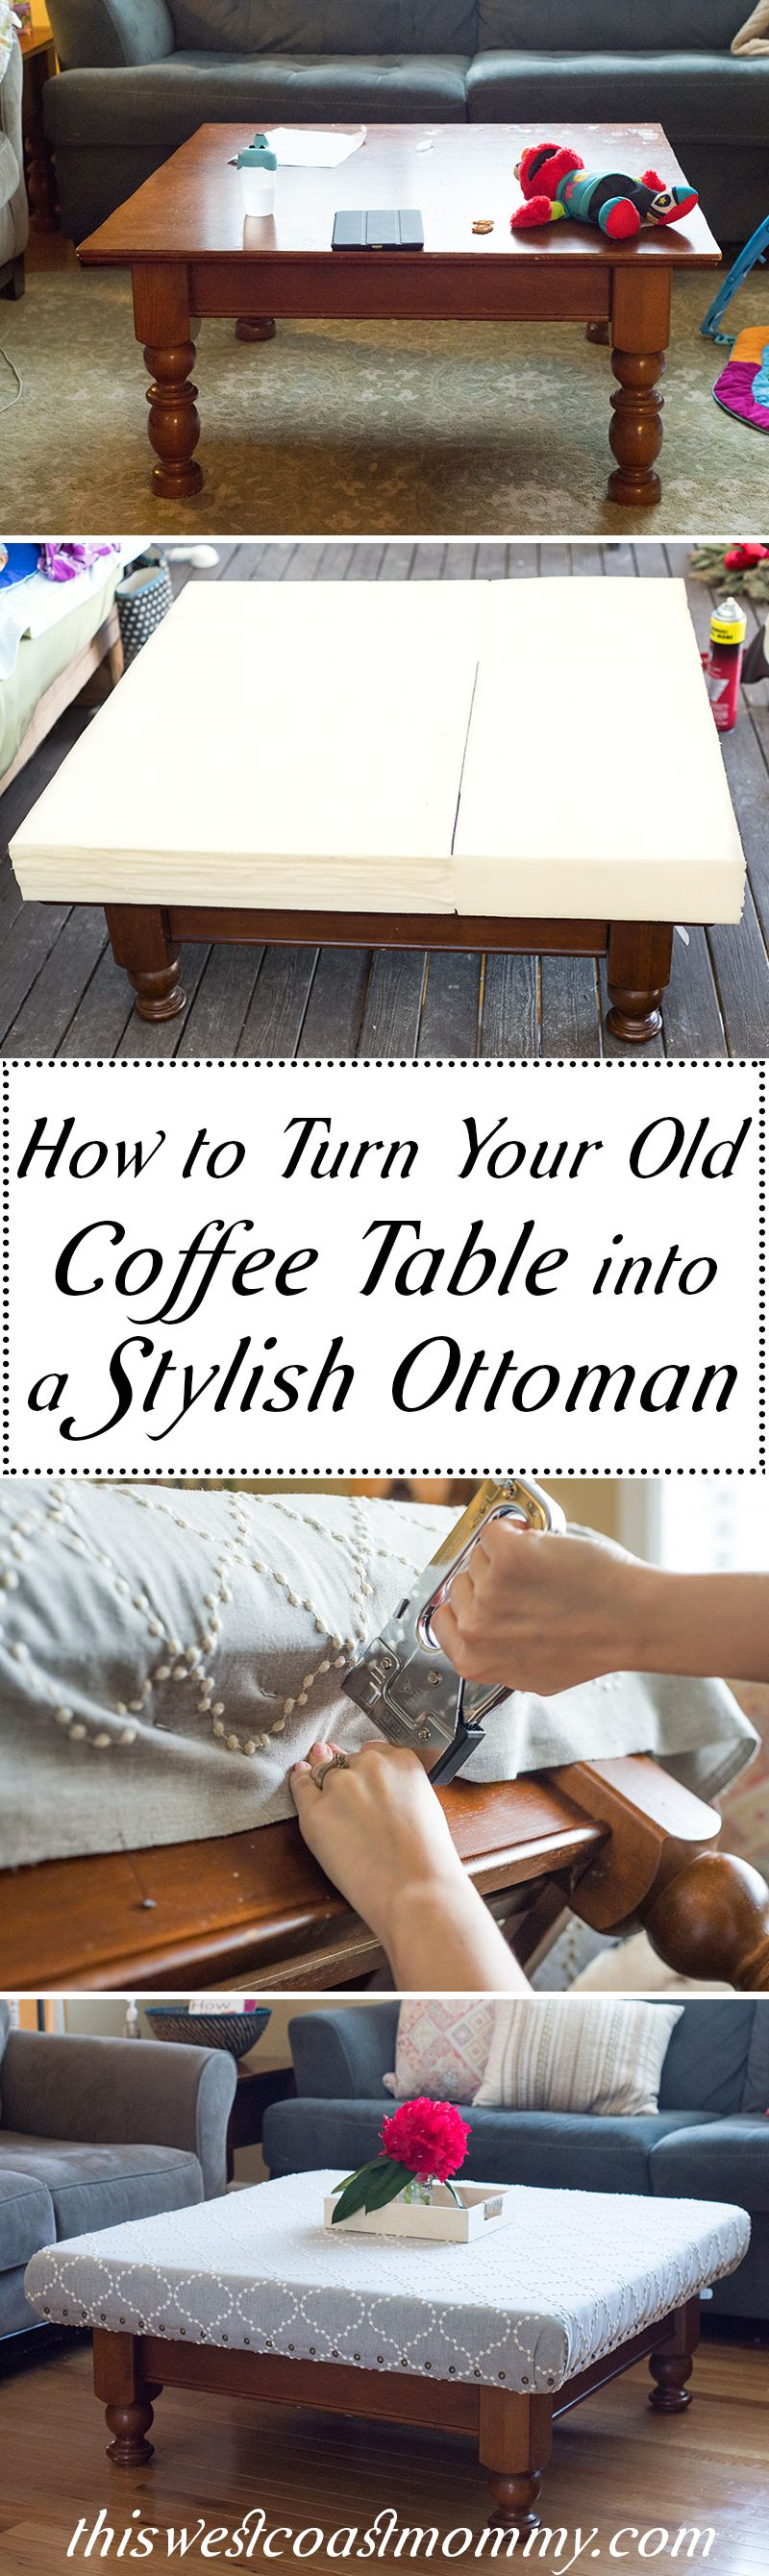 This Step By Step Photo Tutorial Will Show You How To Turn Your Old Beat Up Coffee Table Into A Gorgeous New Ottoman Diy Ottoman Diy Home Decor Furniture Diy [ 2680 x 800 Pixel ]